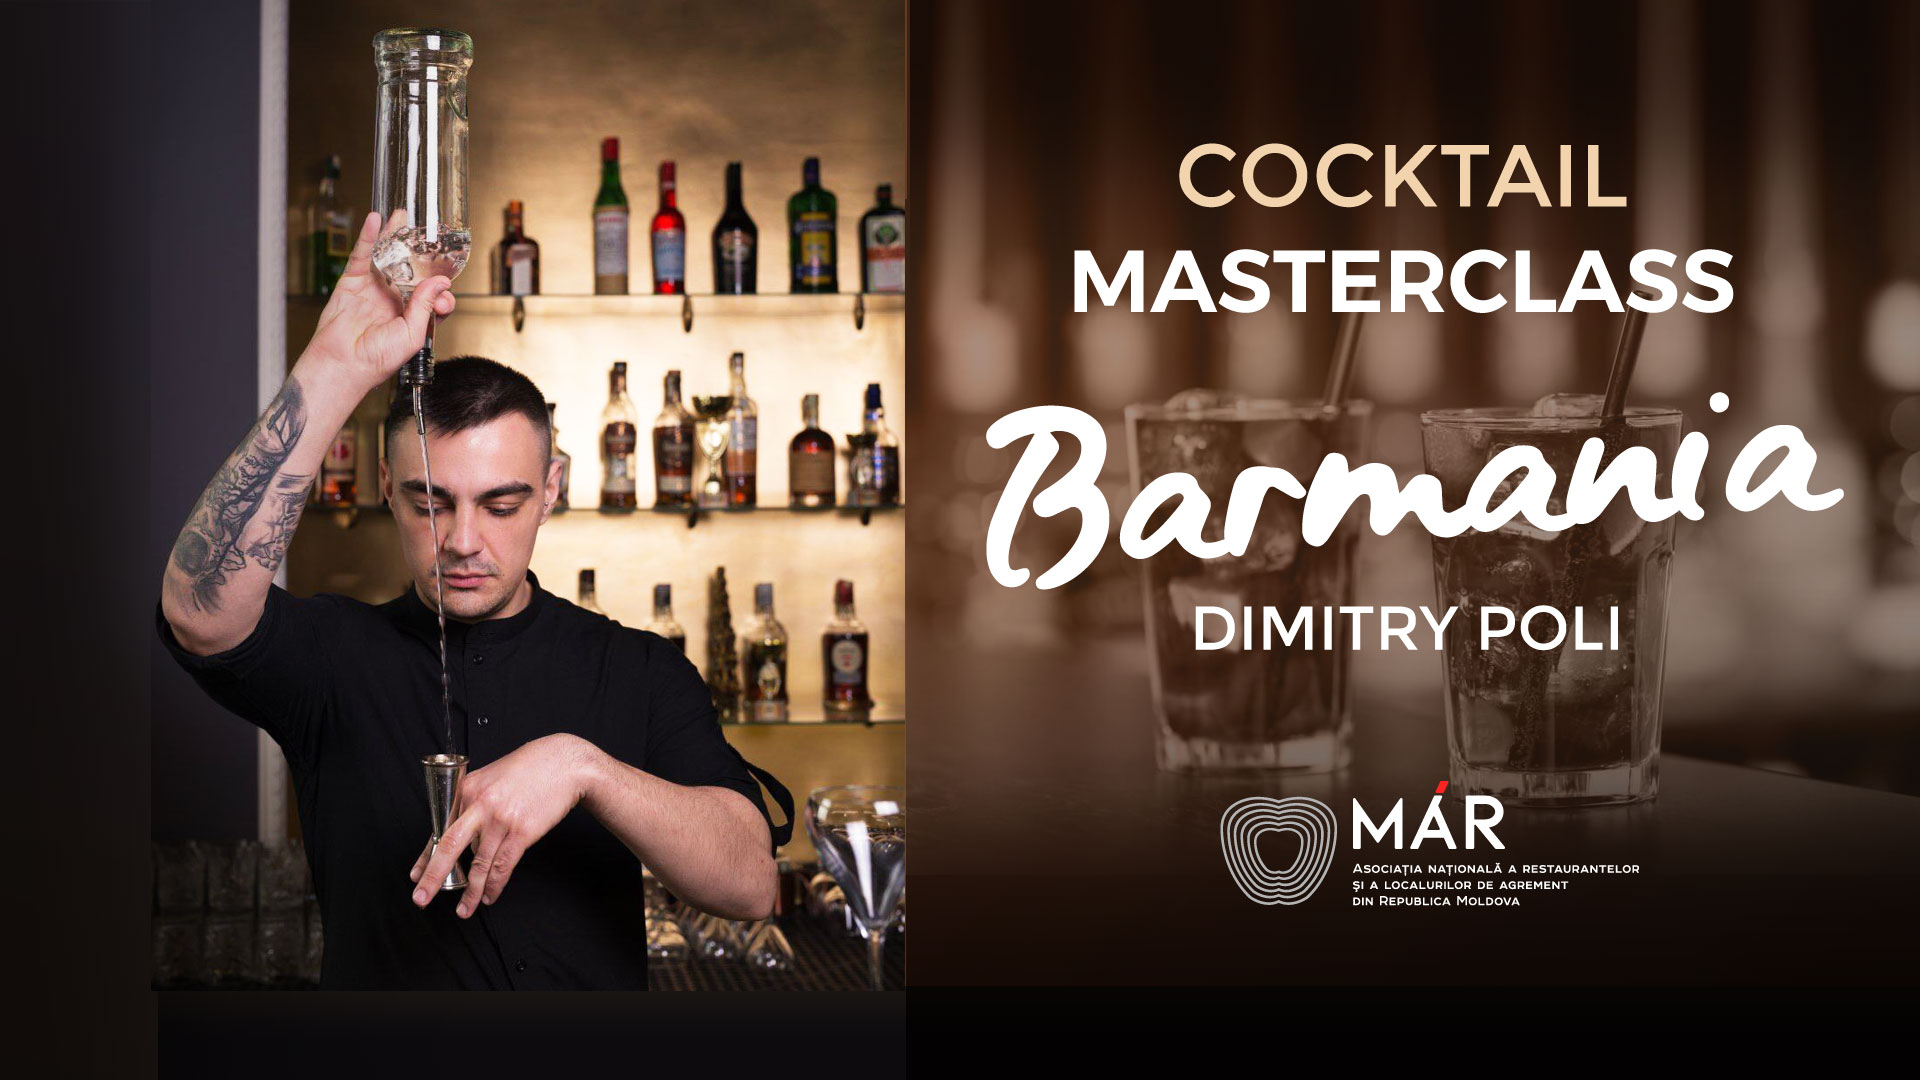 "FOTO / VIDEO | Cocktail Masterclass ""BARMANIA"" continuă. Barmanii din țară sunt invitați să participe gratuit la training"